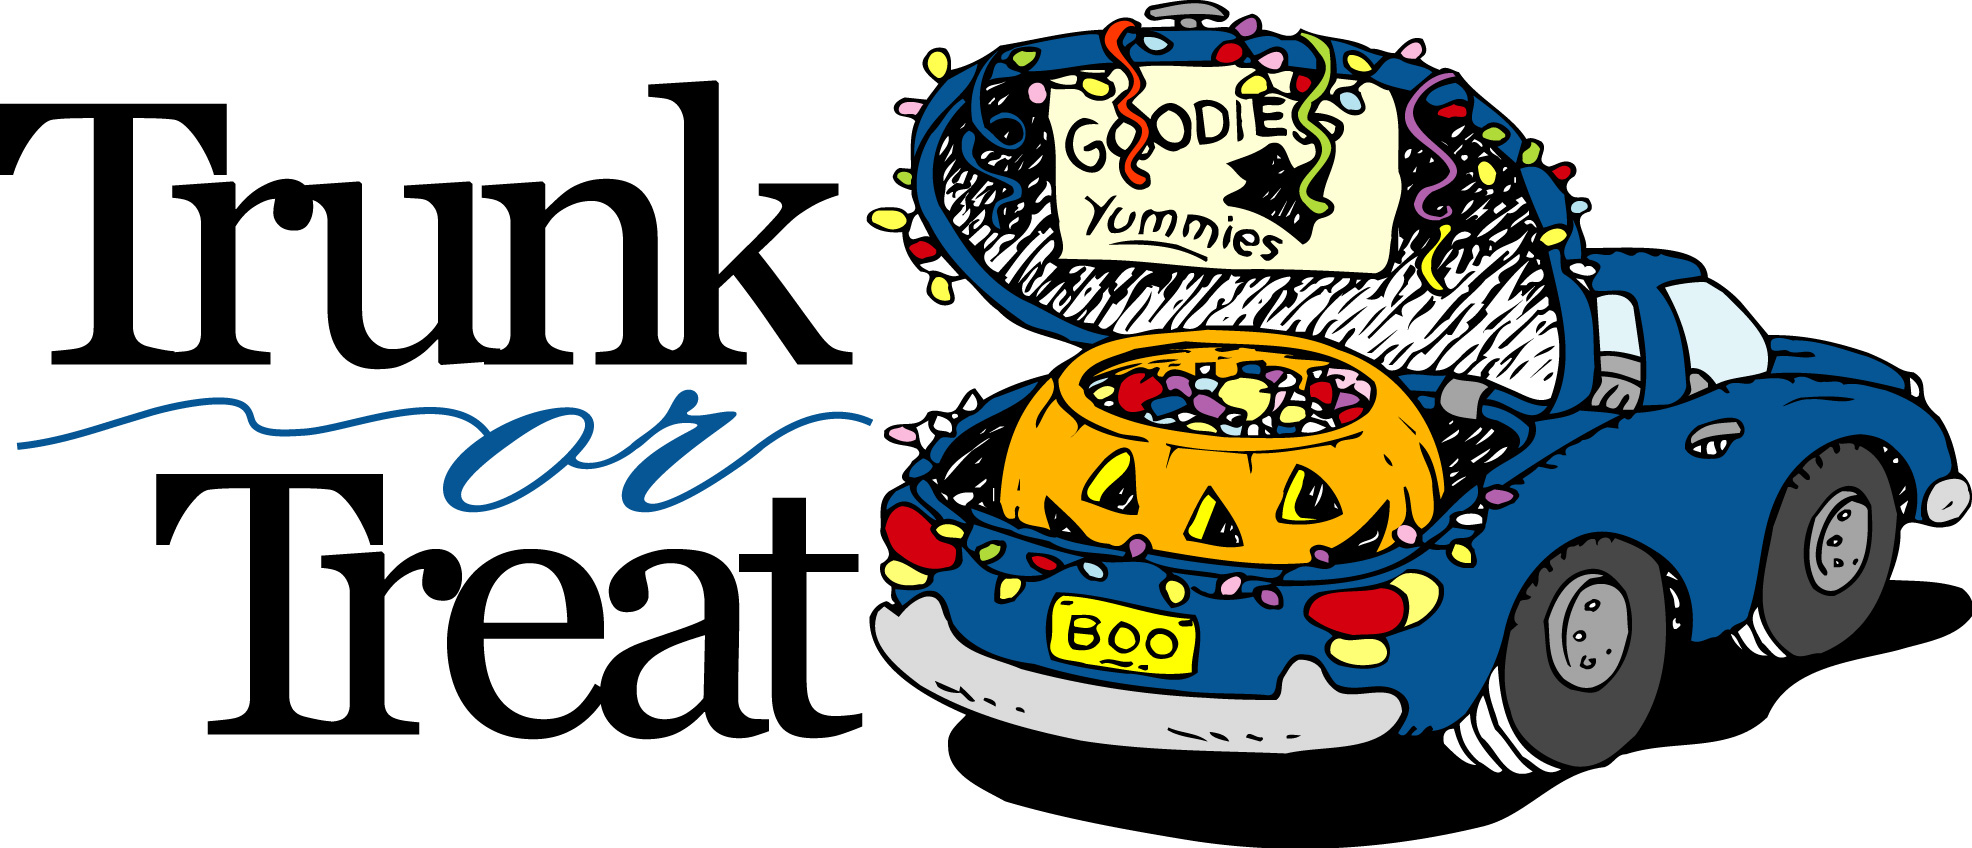 Trunk or Treat graphic represented by a blue car with Halloween Decortions and a Jack-o-Lantern